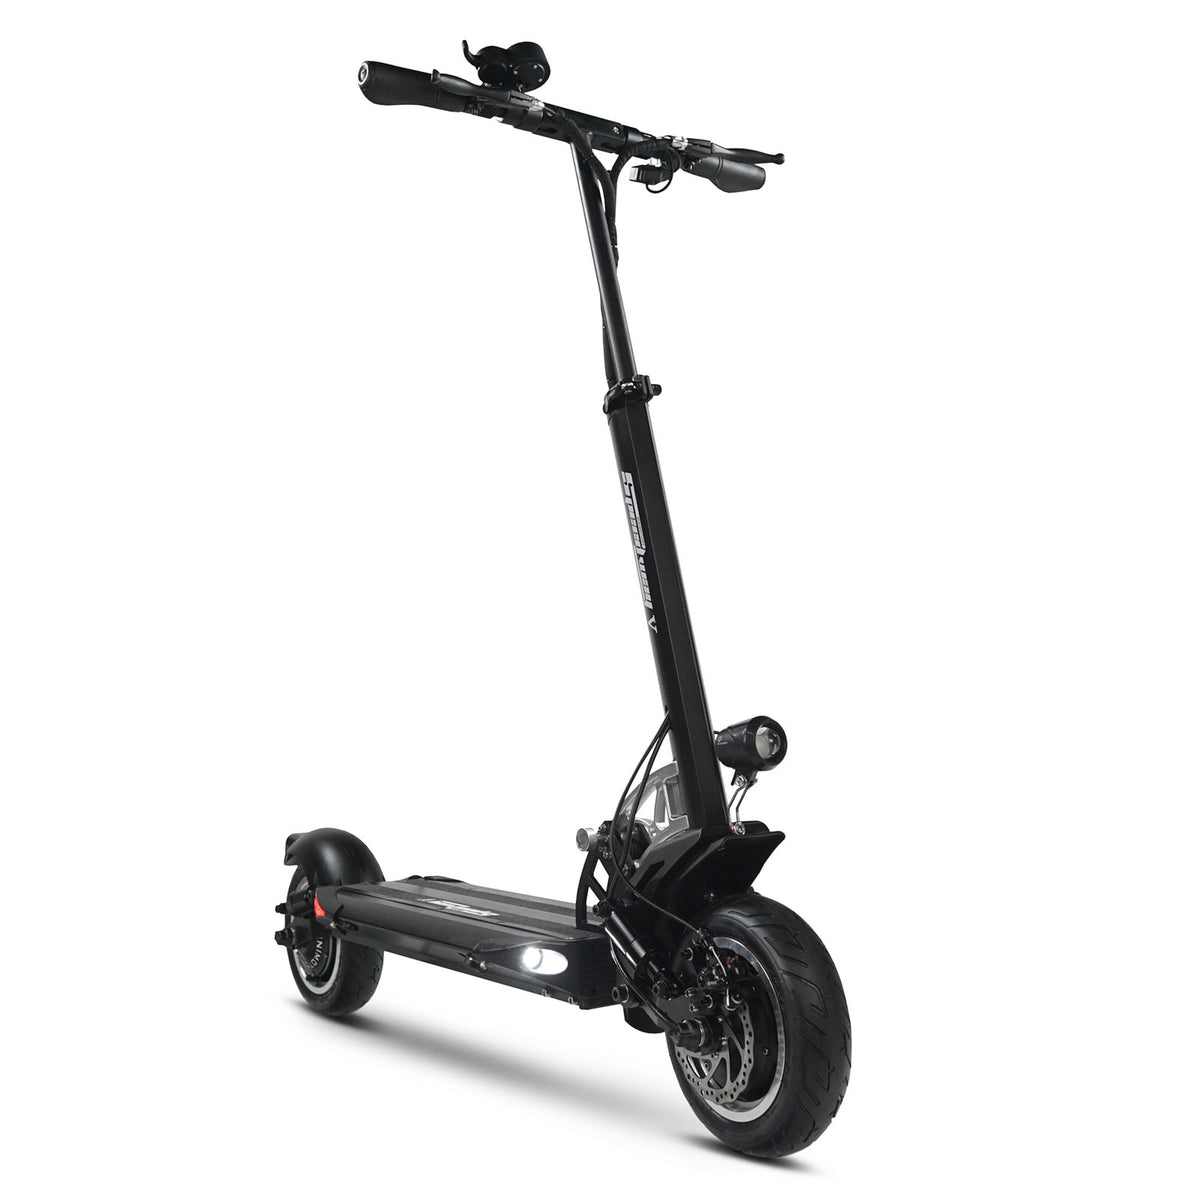 Speedway 5 Electric Scooter Black